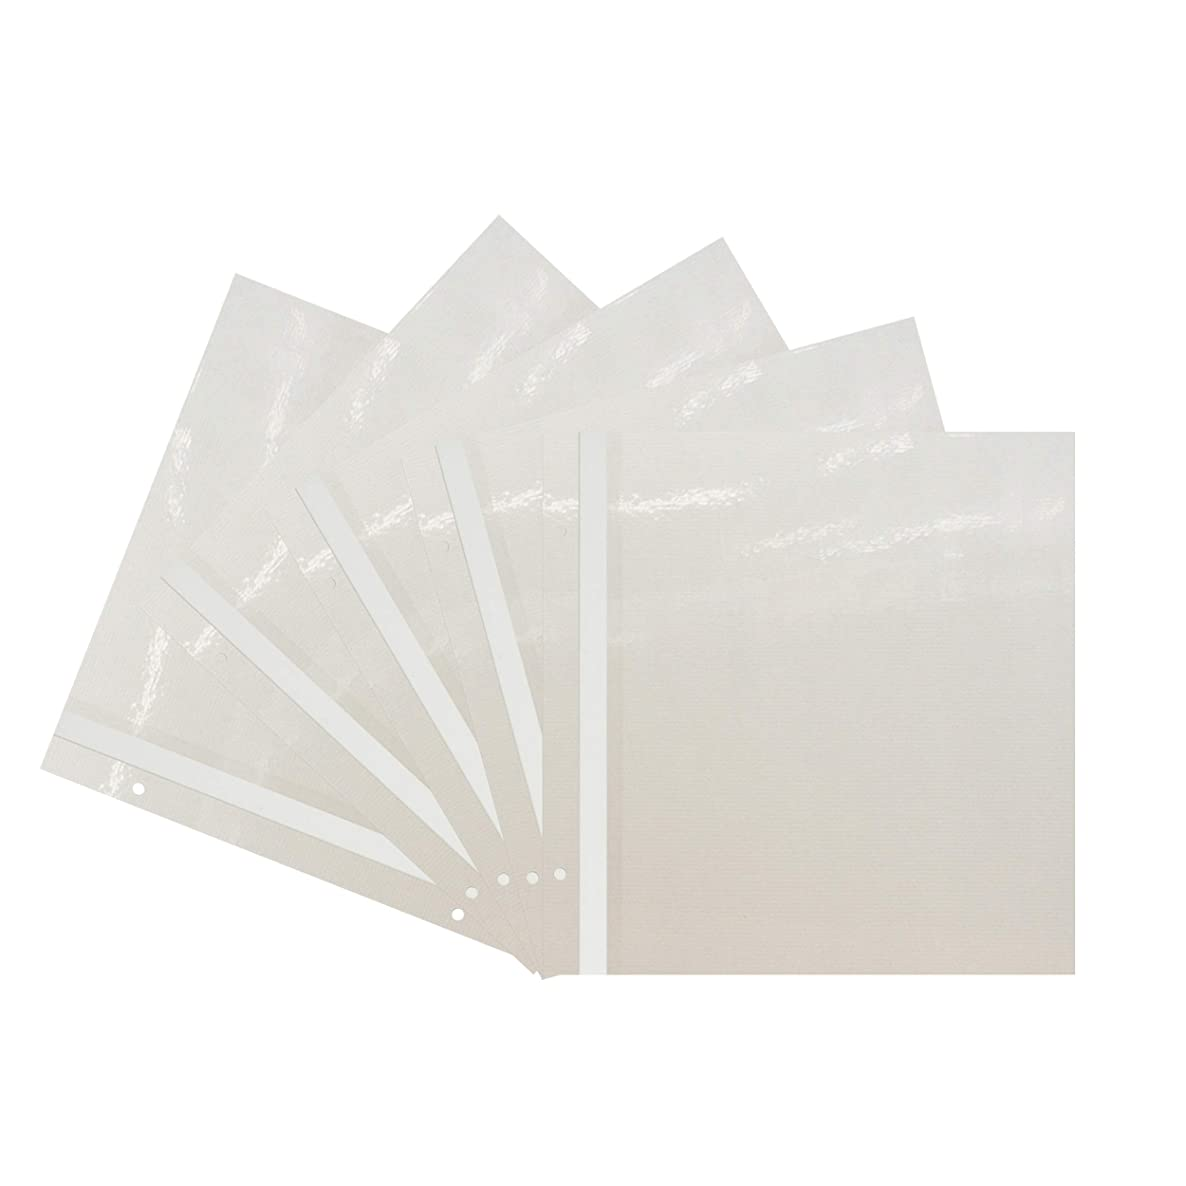 Refill Pages for PMV-206 Large Magnetic Page X-Pando Photo Album